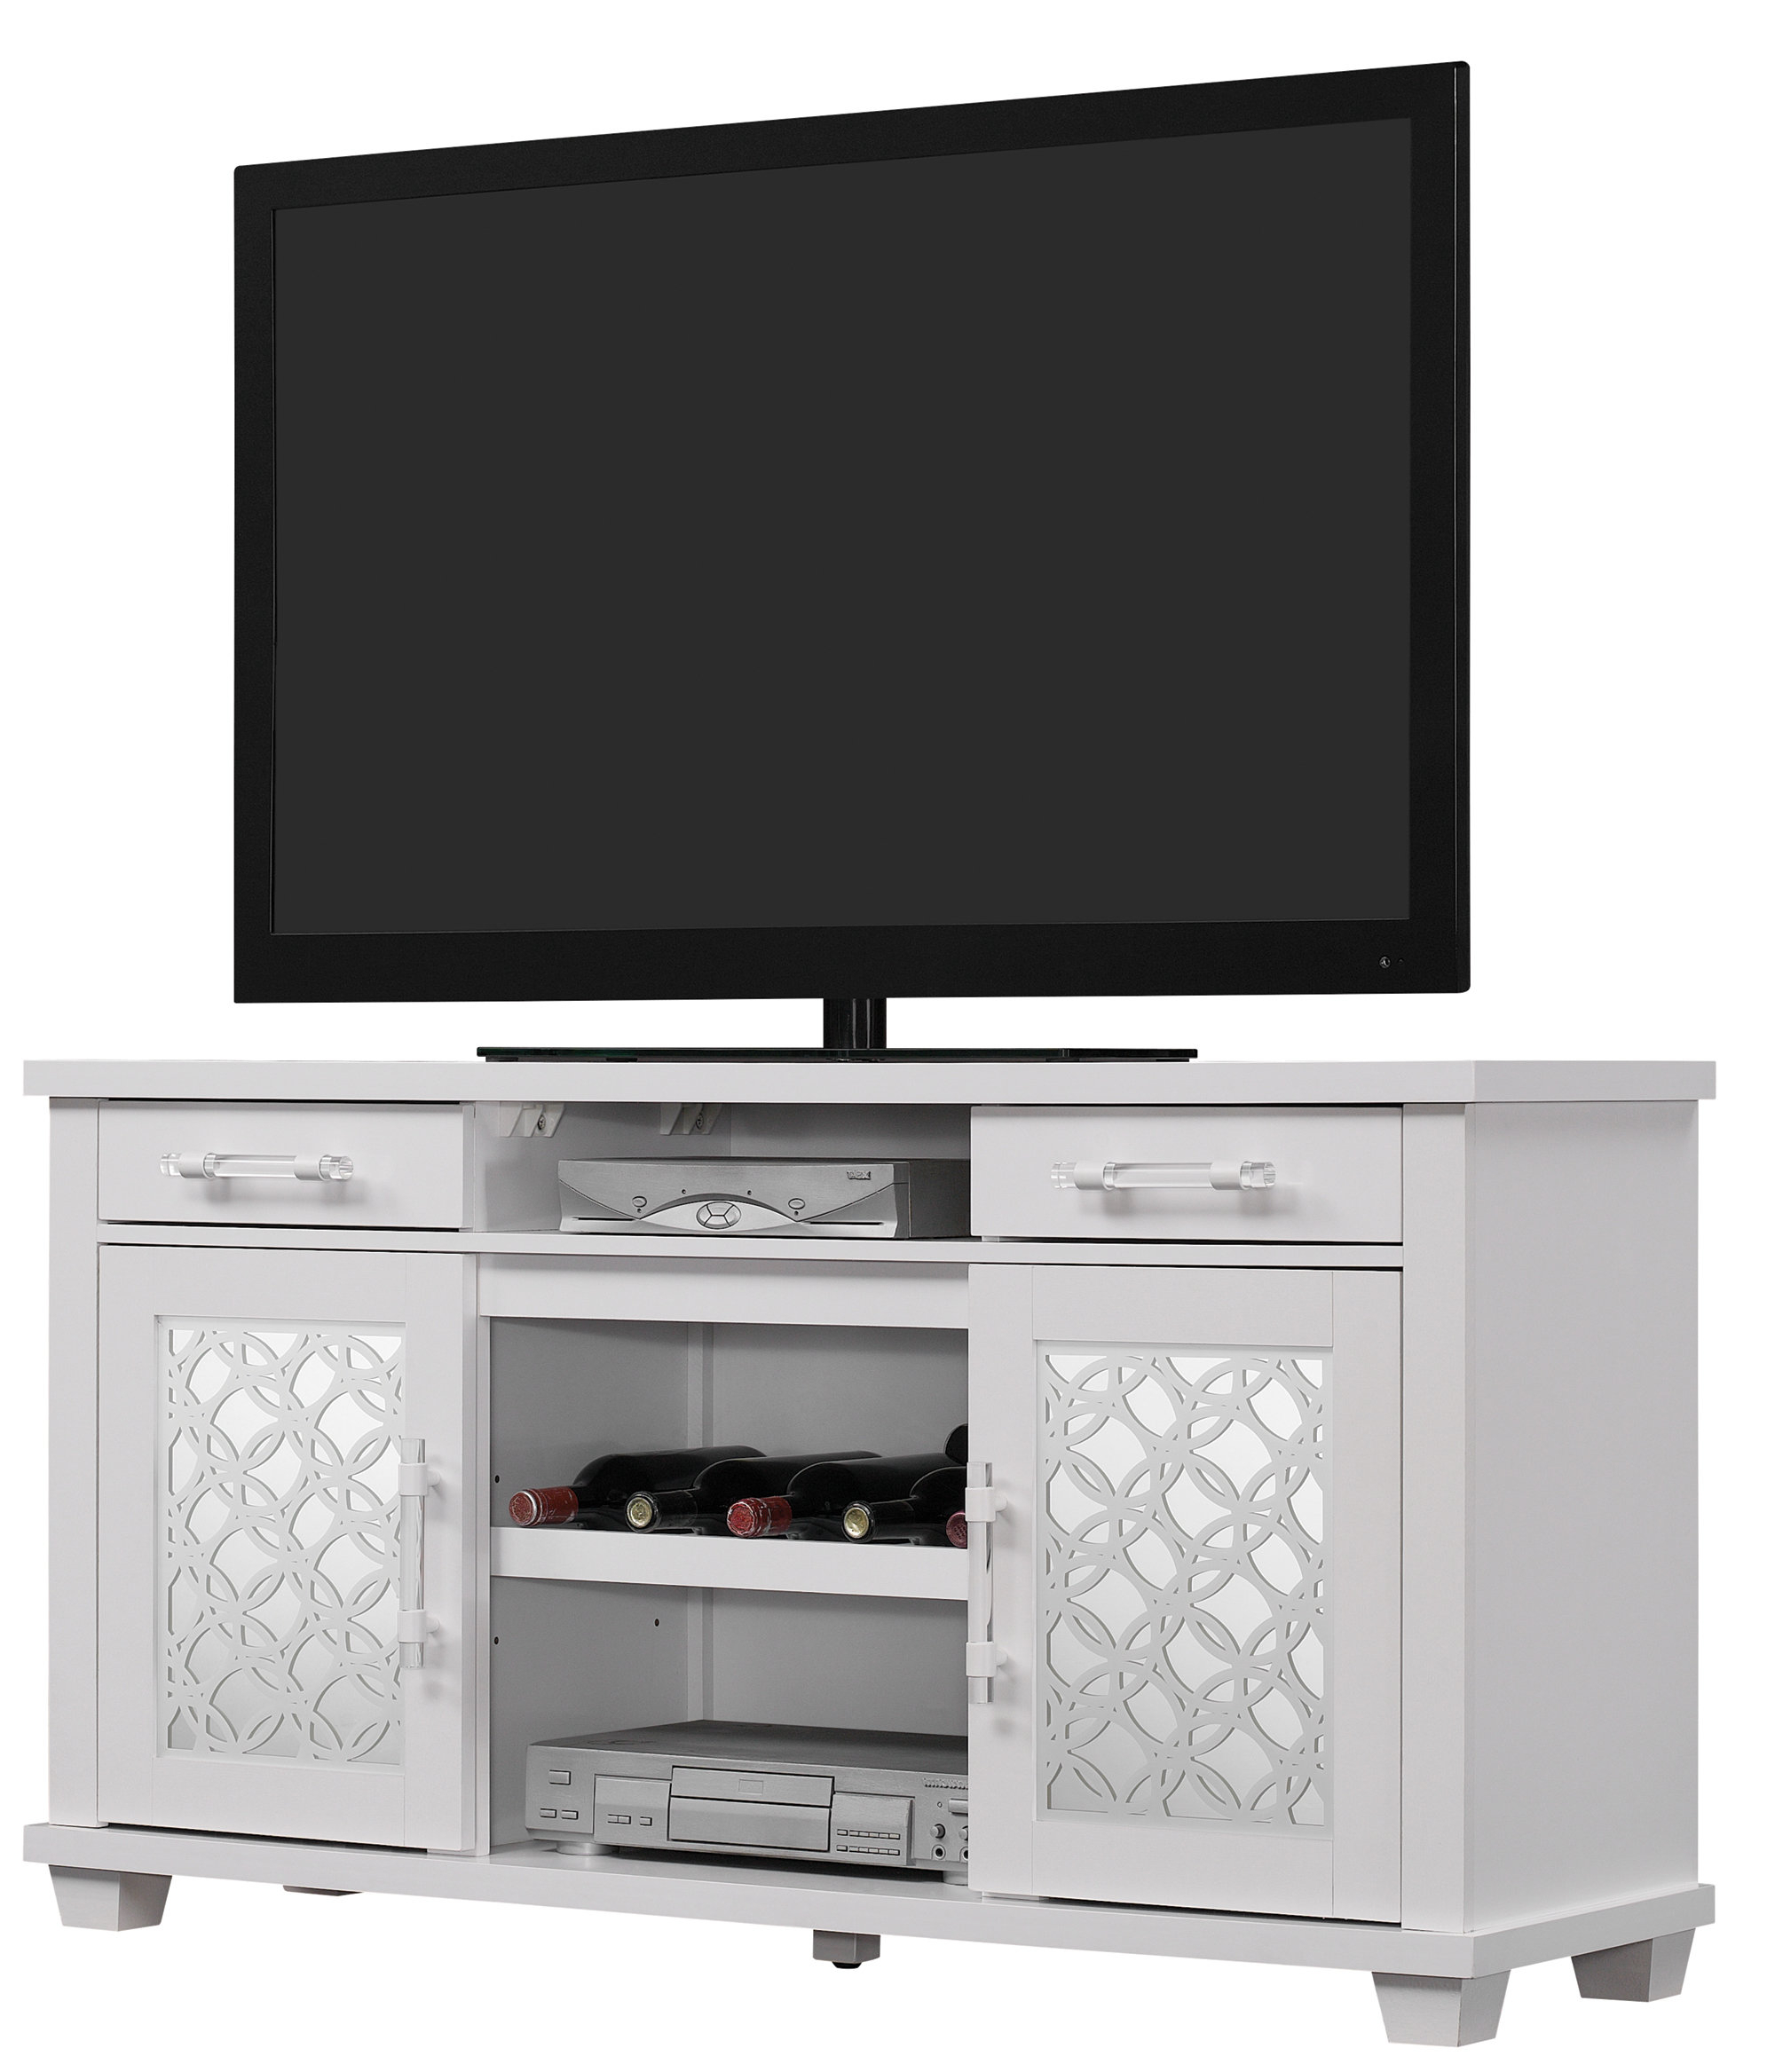 Country Tv Stands Within Most Recently Released French Country Tv Stands You'll Love (View 9 of 20)